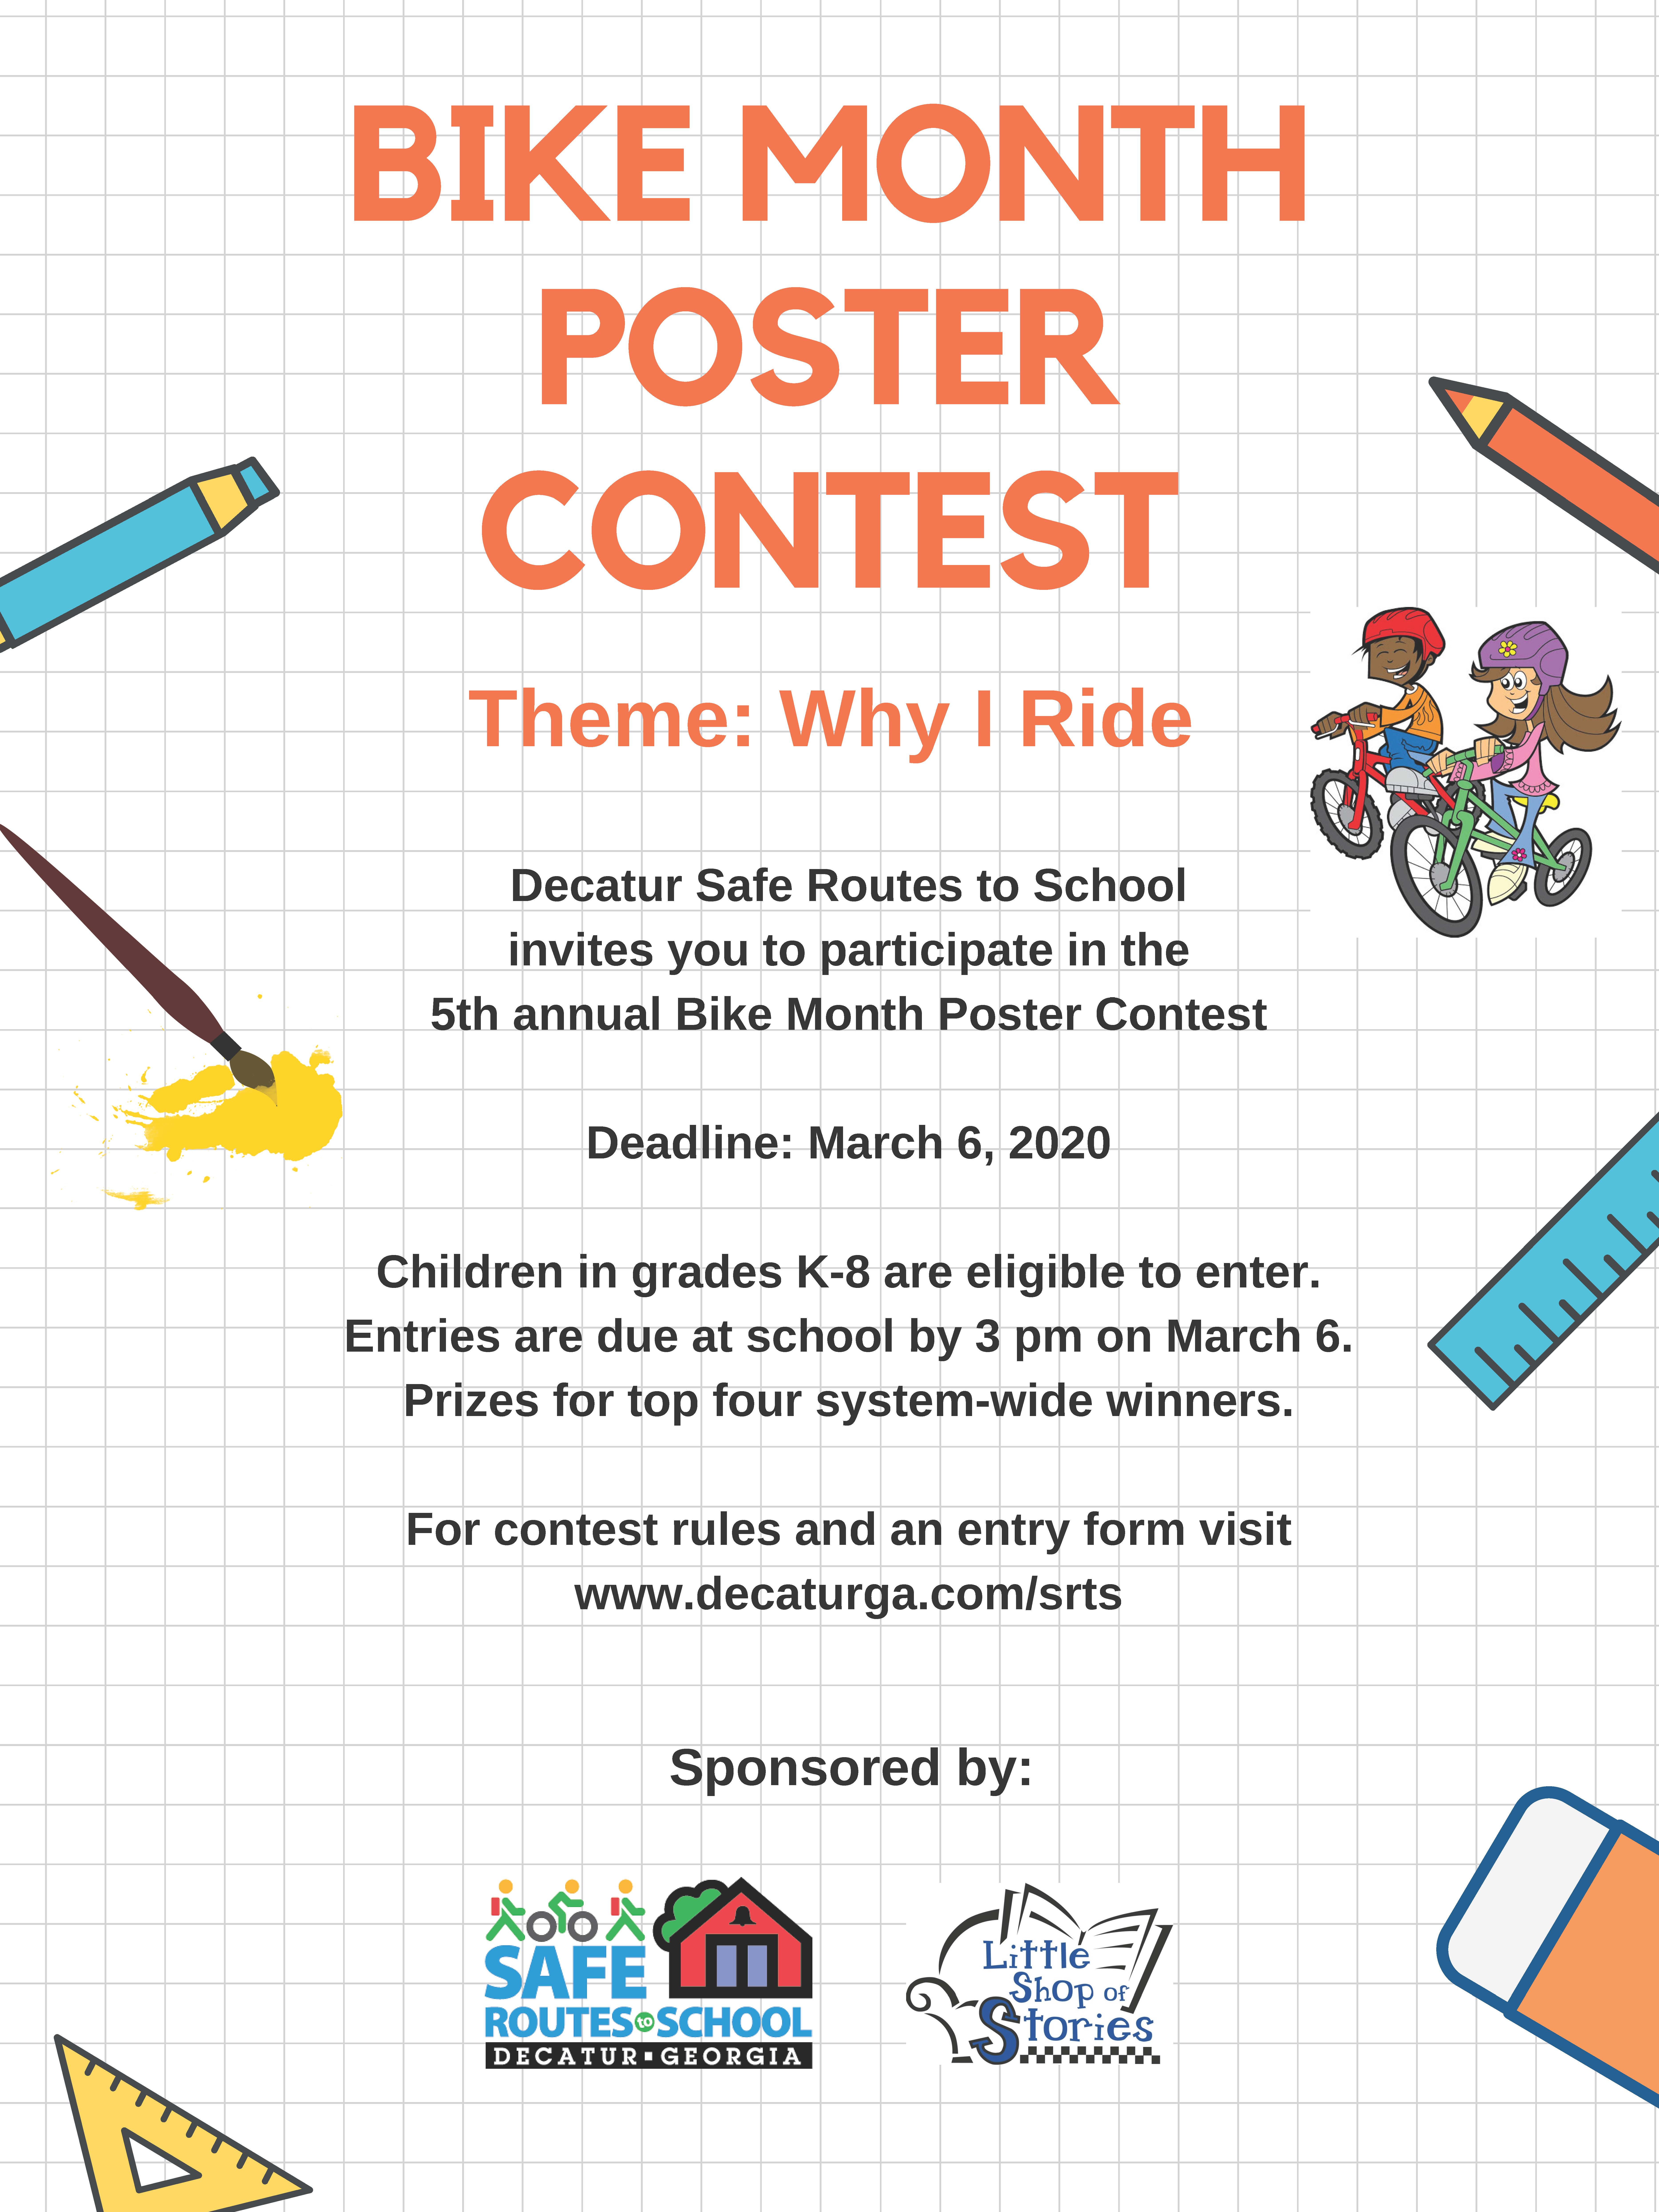 Bike Month Poster Contest flyer 2020